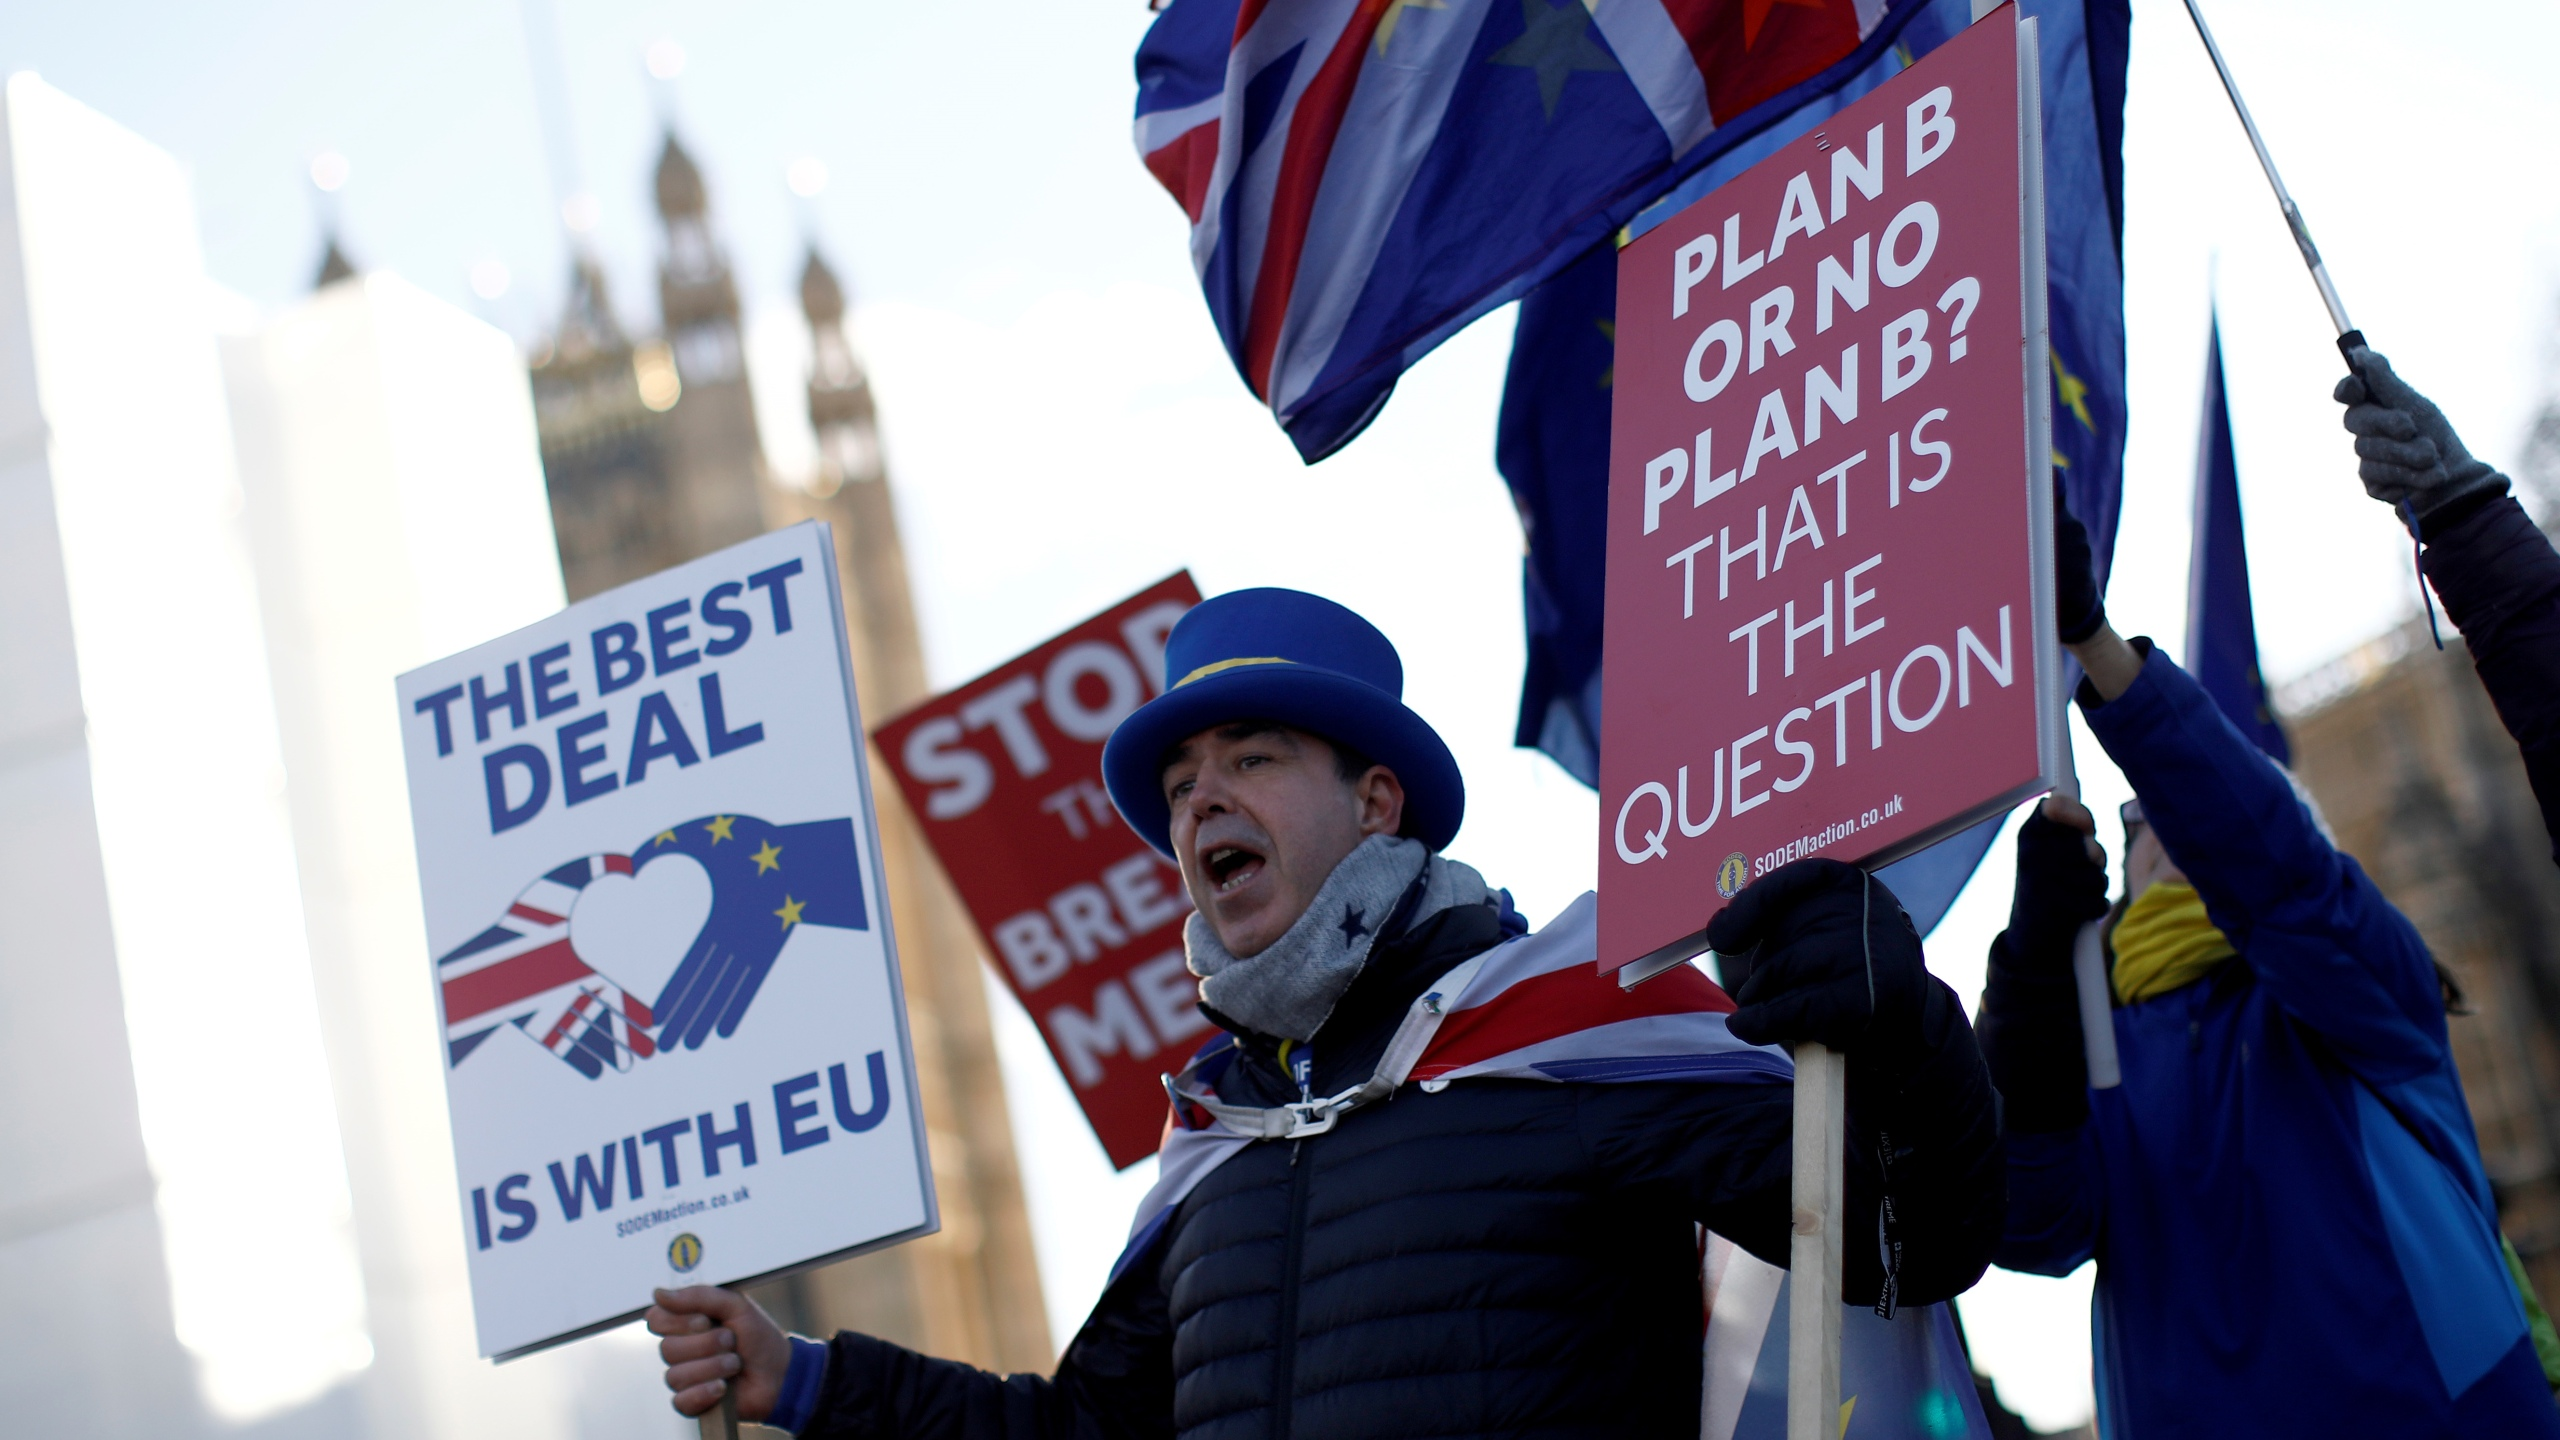 Anti-Brexit campaigner Steve Bray holds placards as he demonstrates near the Houses of Parliament in central London on Jan. 28, 2019. (Credit: TOLGA AKMEN/AFP/Getty Images)